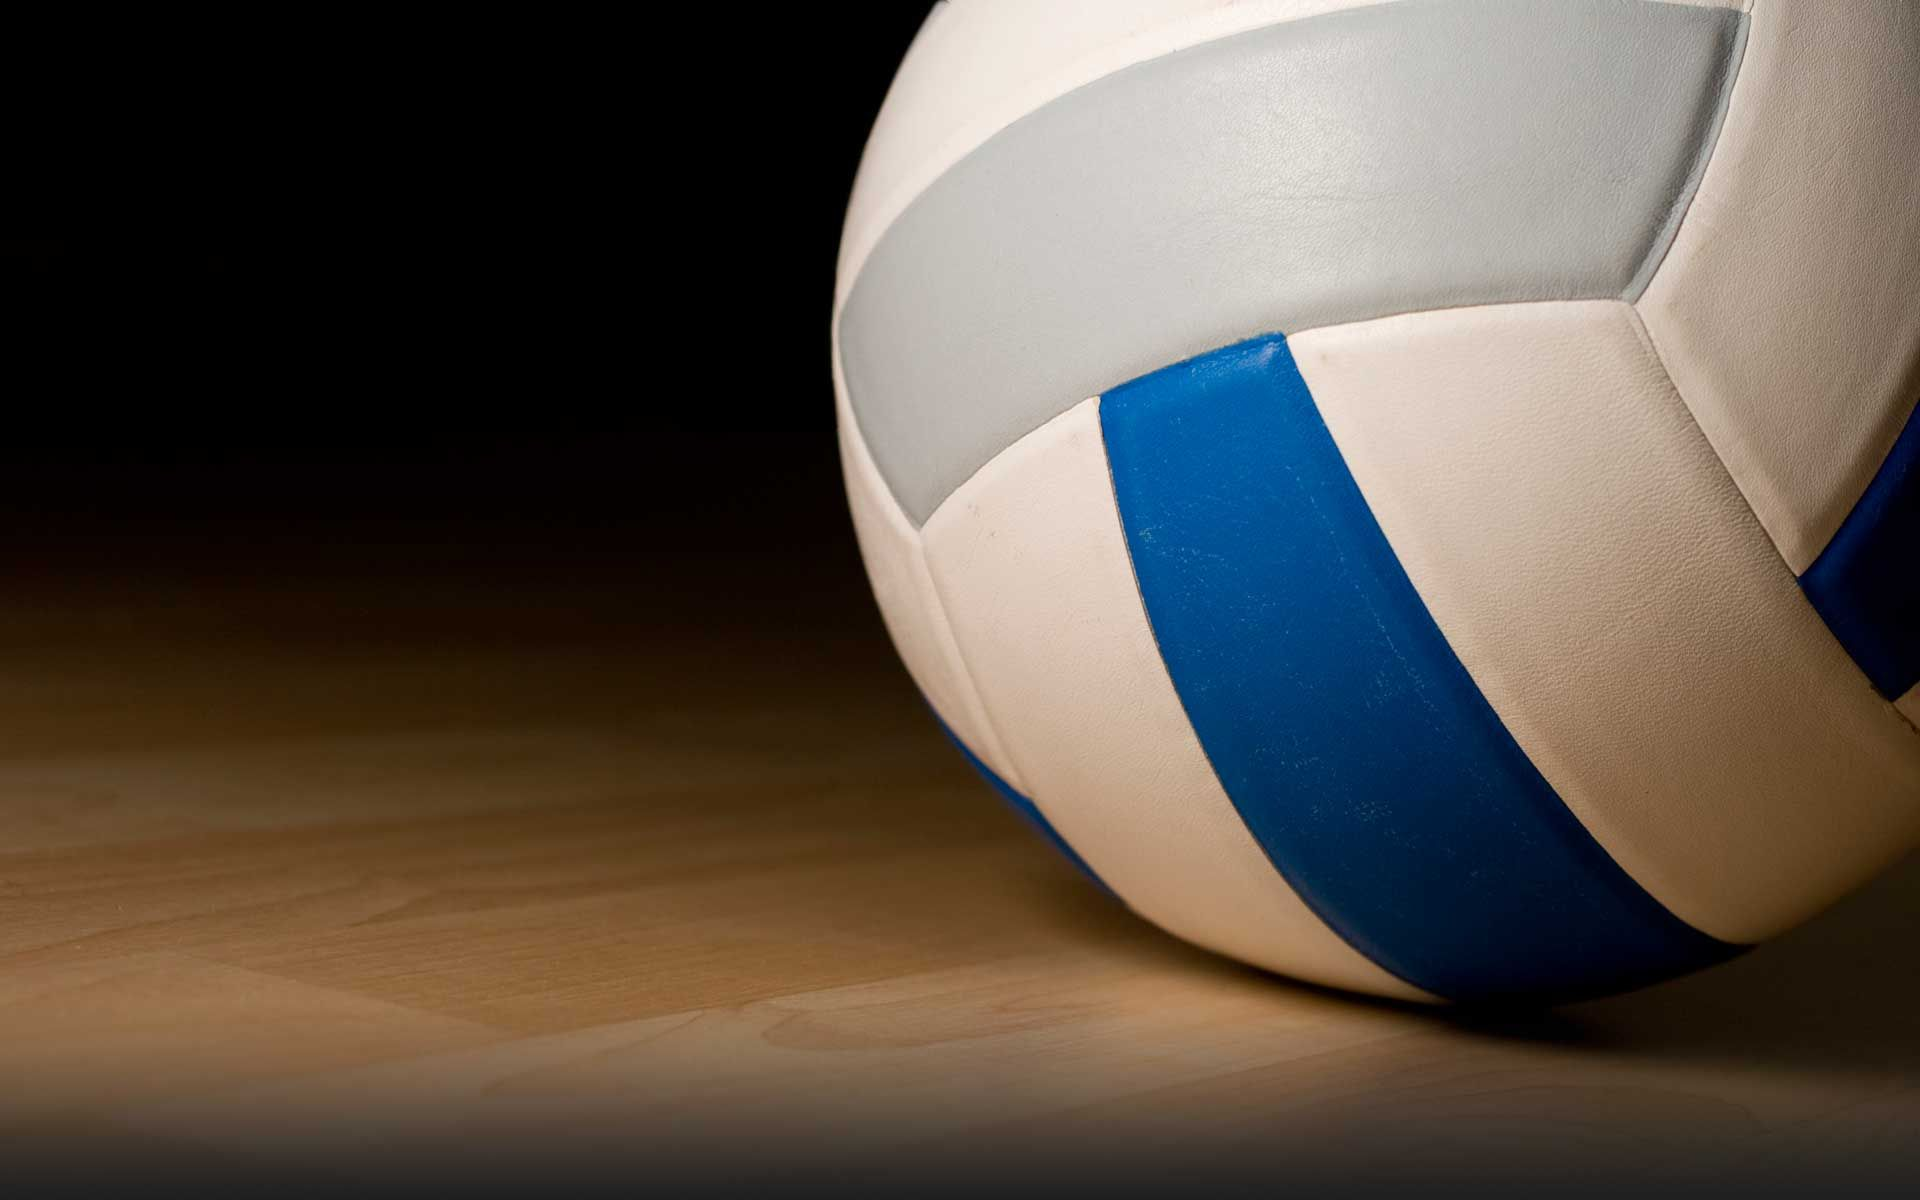 Evdl8n5 Jpg 1920 1200 Volleyball Wallpaper Volleyball Backgrounds Volleyball